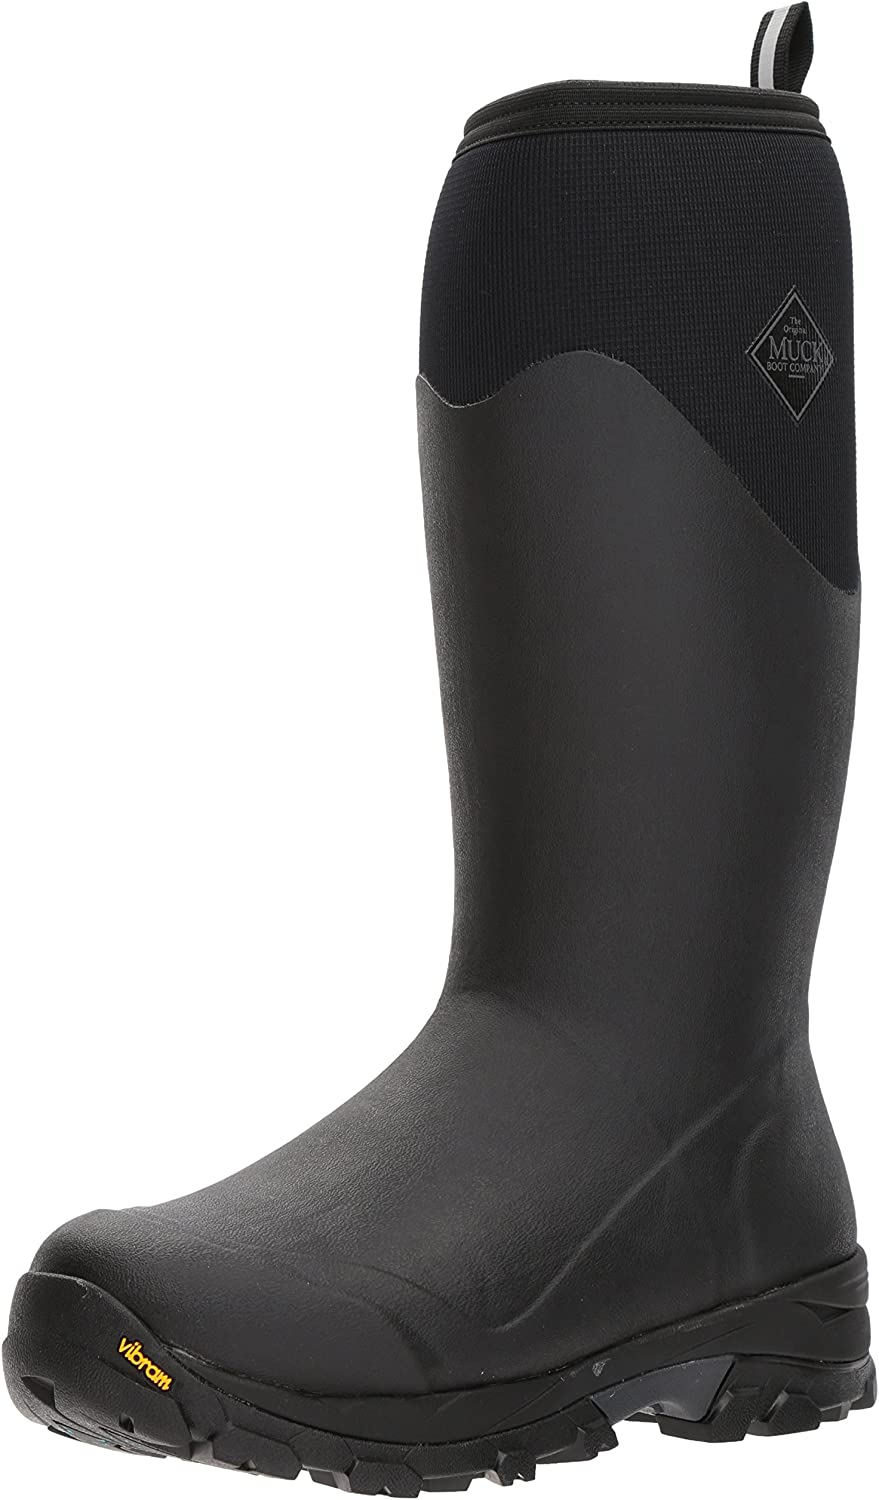 3. Muck Boots Arctic Ice Extreme Conditions Tall Rubber Men's Winter Boot